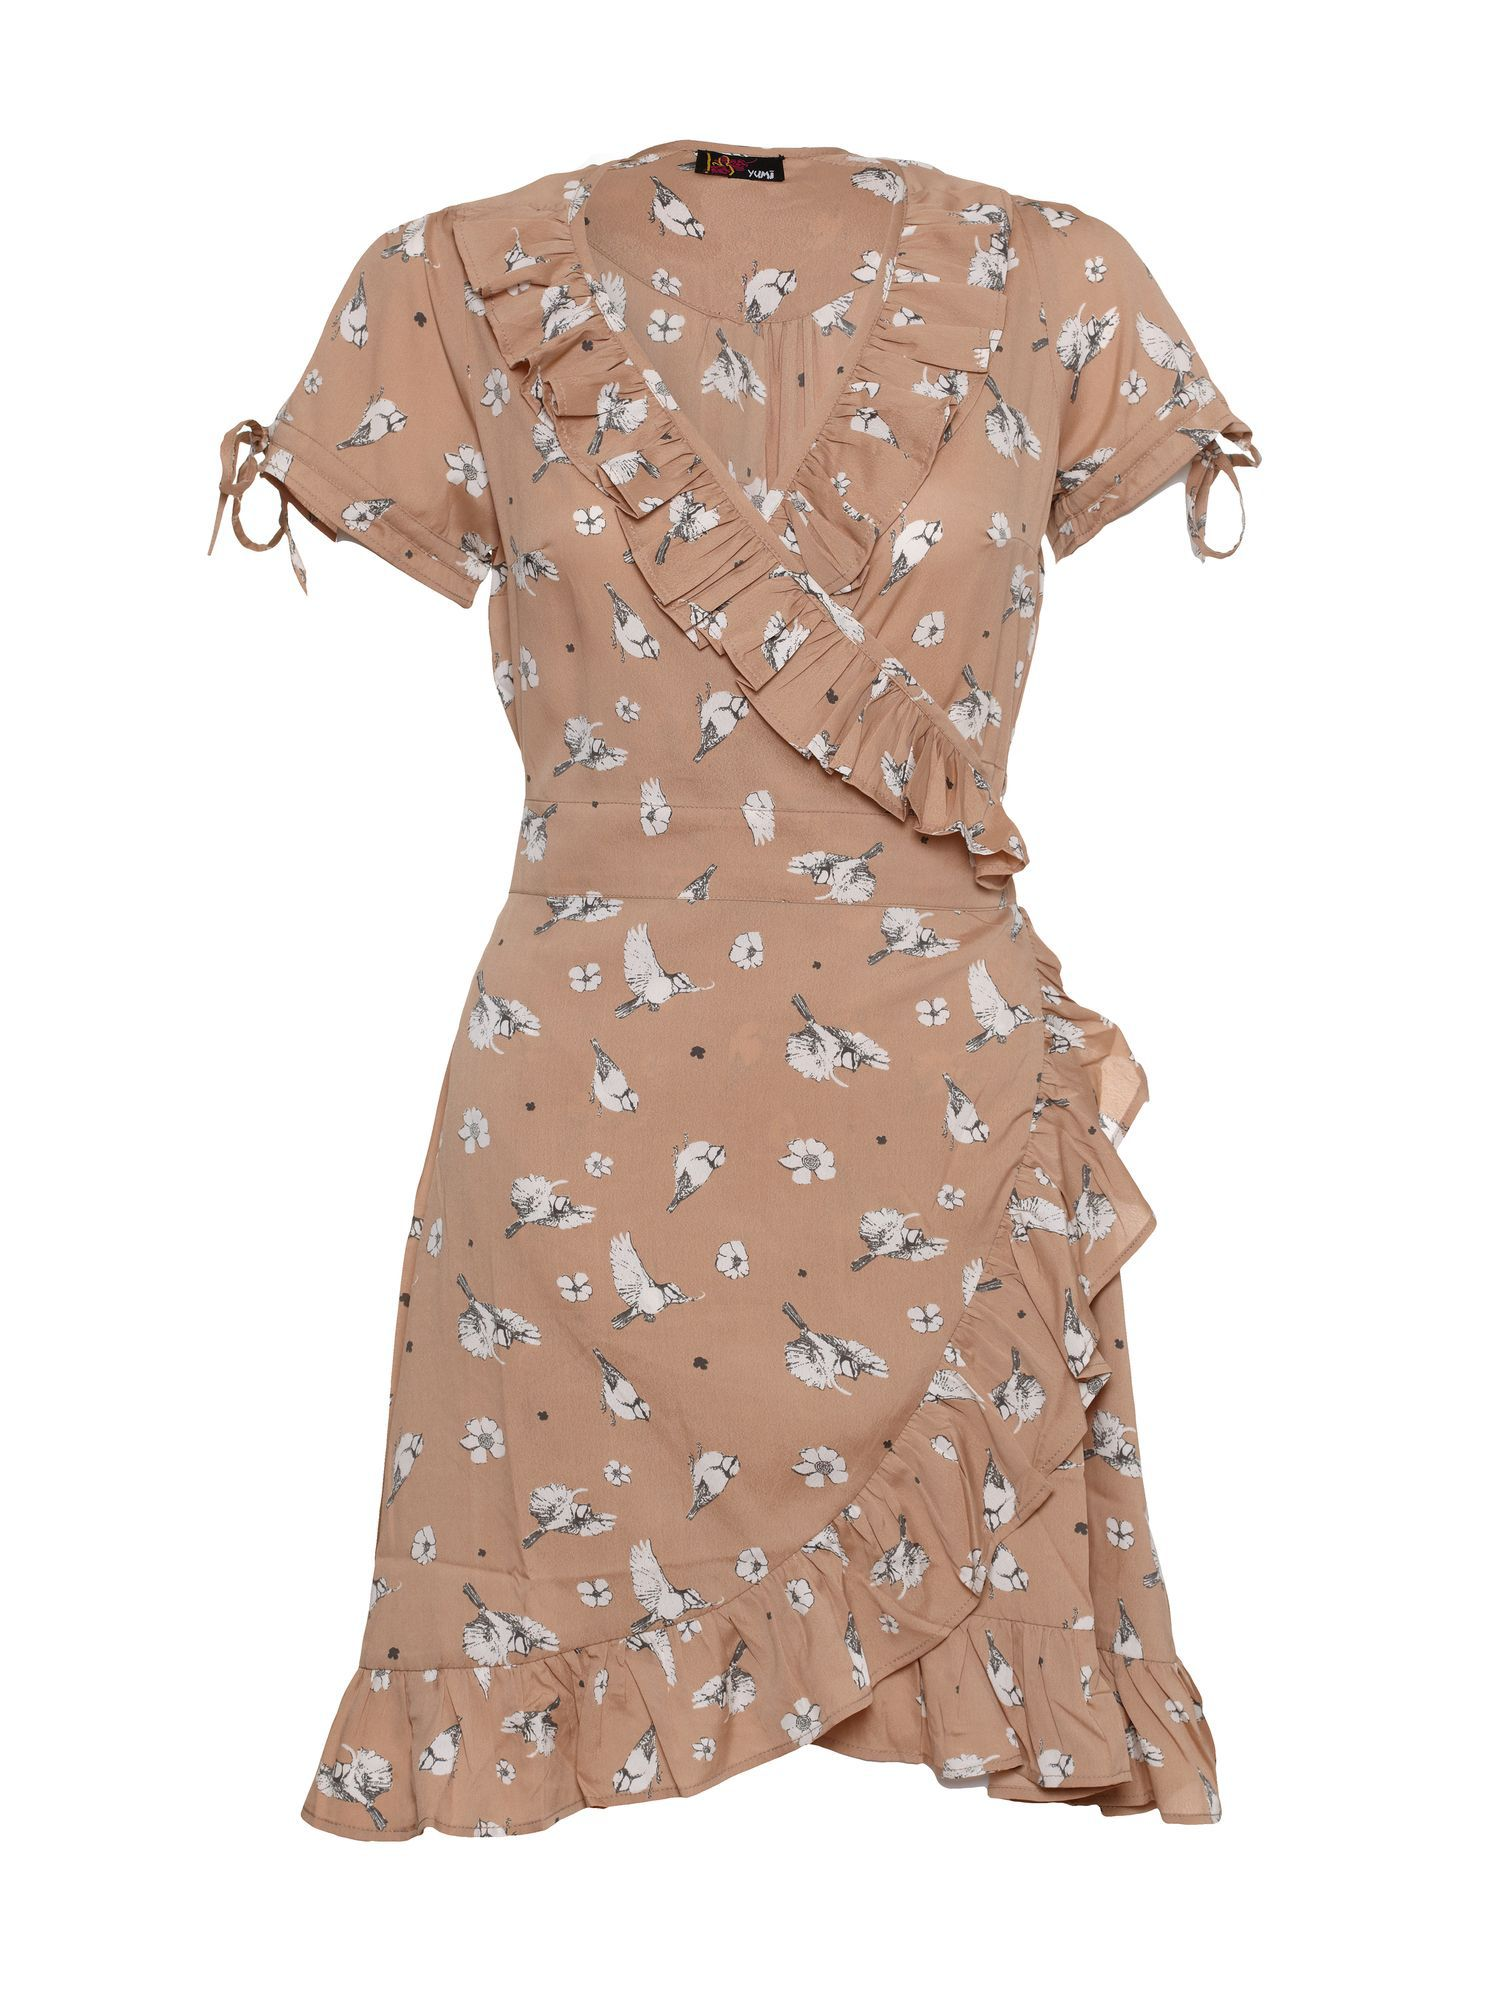 Boat print wrap dress